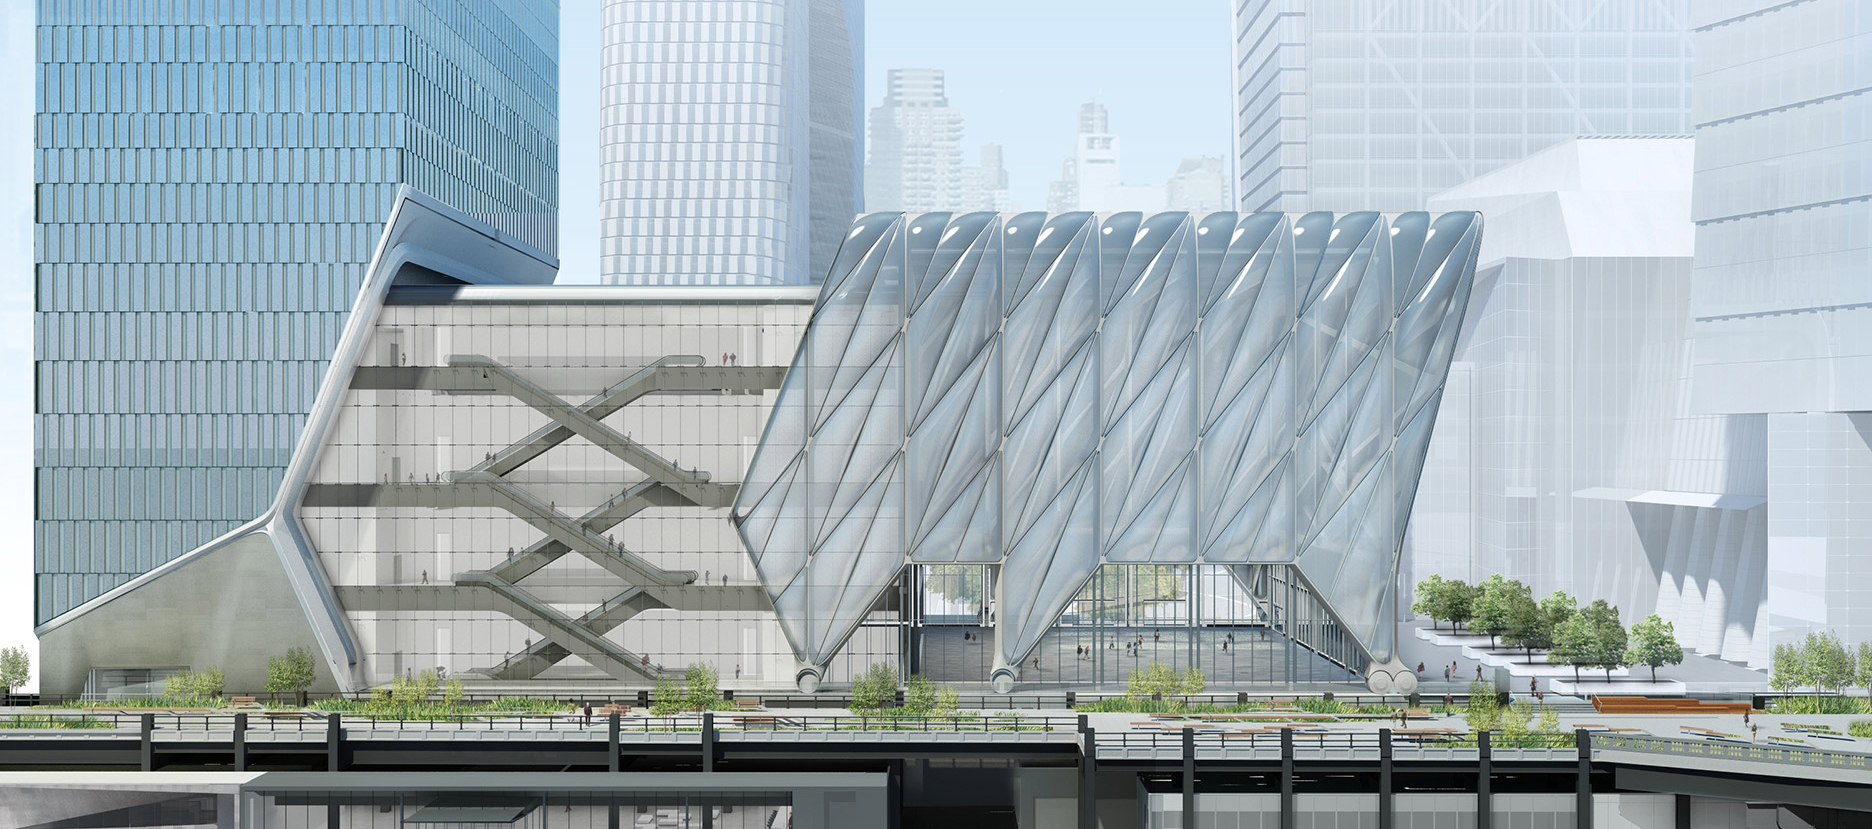 Render. The Shed by Diller Scofidio + Renfro. Image coutesy of Rockwell Group